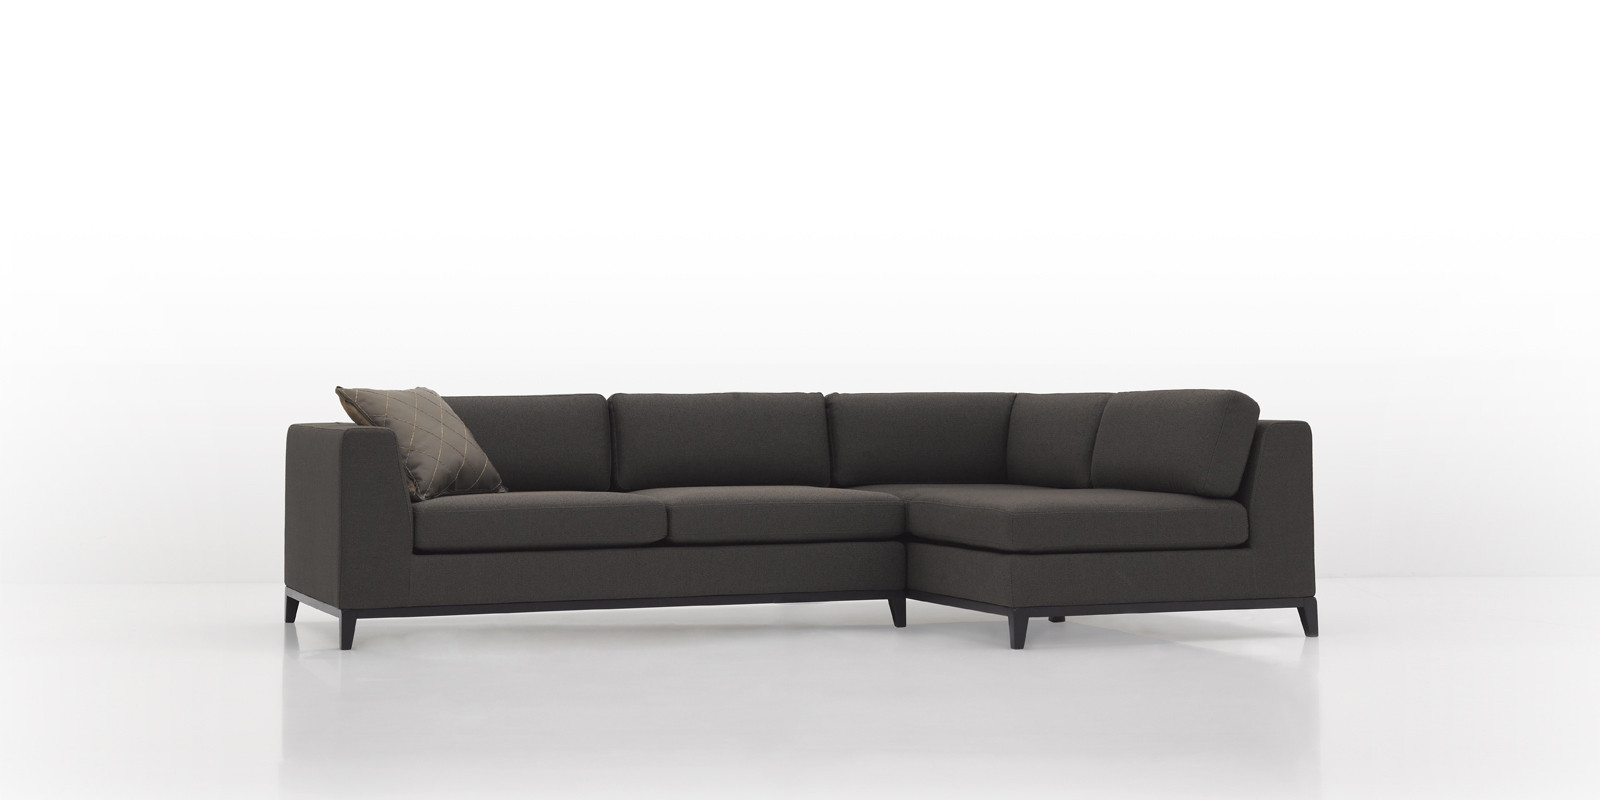 Dfs Sofa Legs Modular Sofa Combination Dfs219 - Dickson Furniture